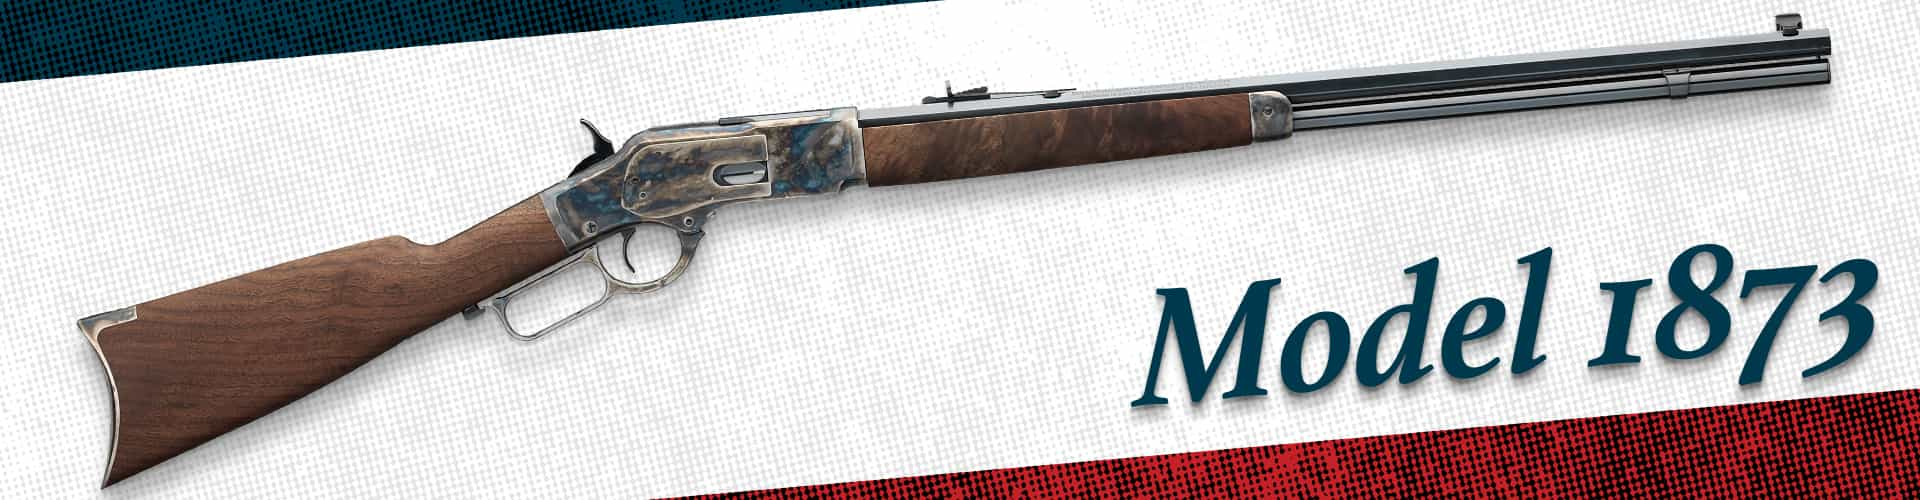 Model 1873 - Lever-Action Rifles - Winchester